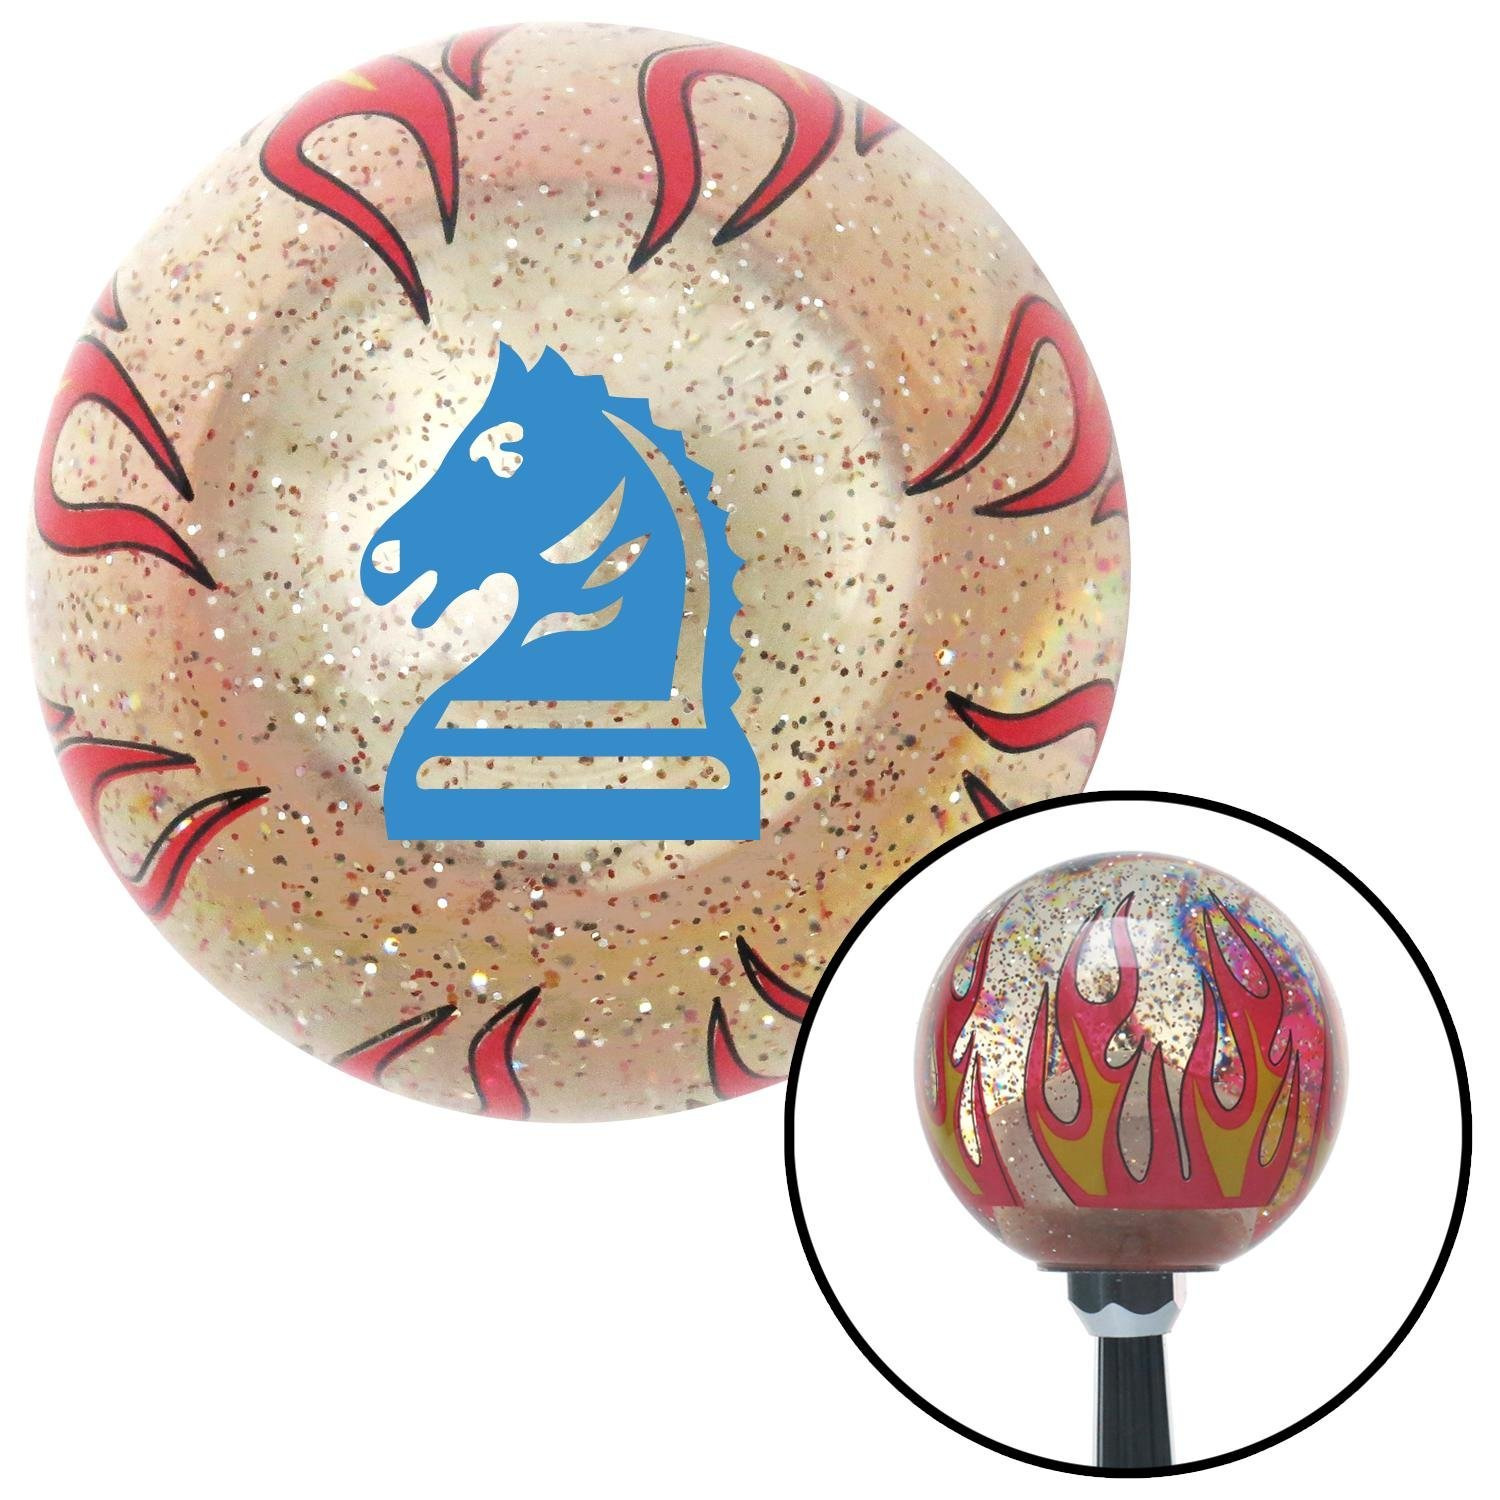 American Shifter 233825 Clear Flame Metal Flake Shift Knob with M16 x 1.5 Insert Blue Knight Horse